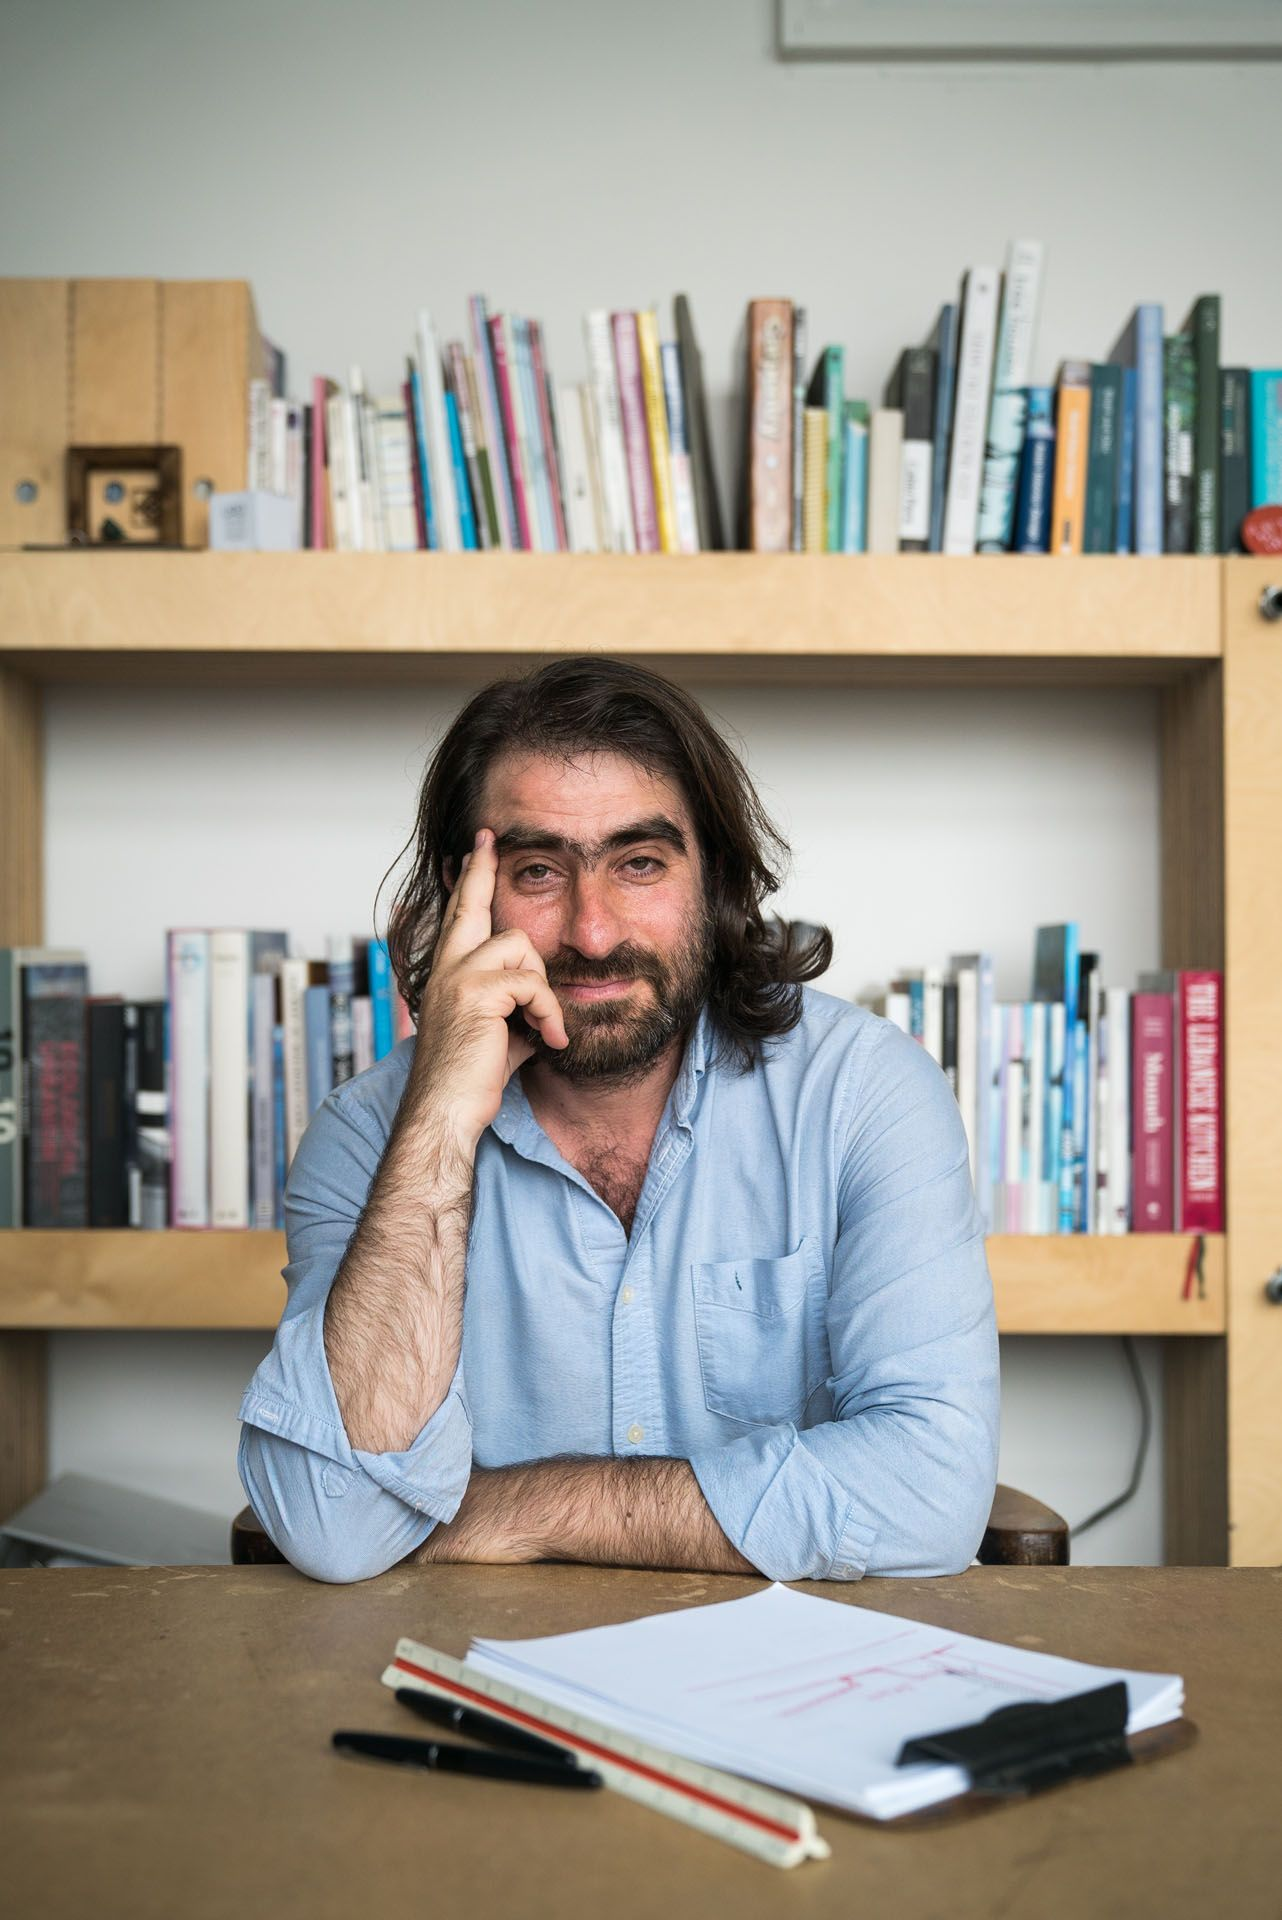 male writer long hair beard and unibrow sitting at desk in front of library looking at camera wearing light blue shirt by Bruno Florin for mile ex mille vie